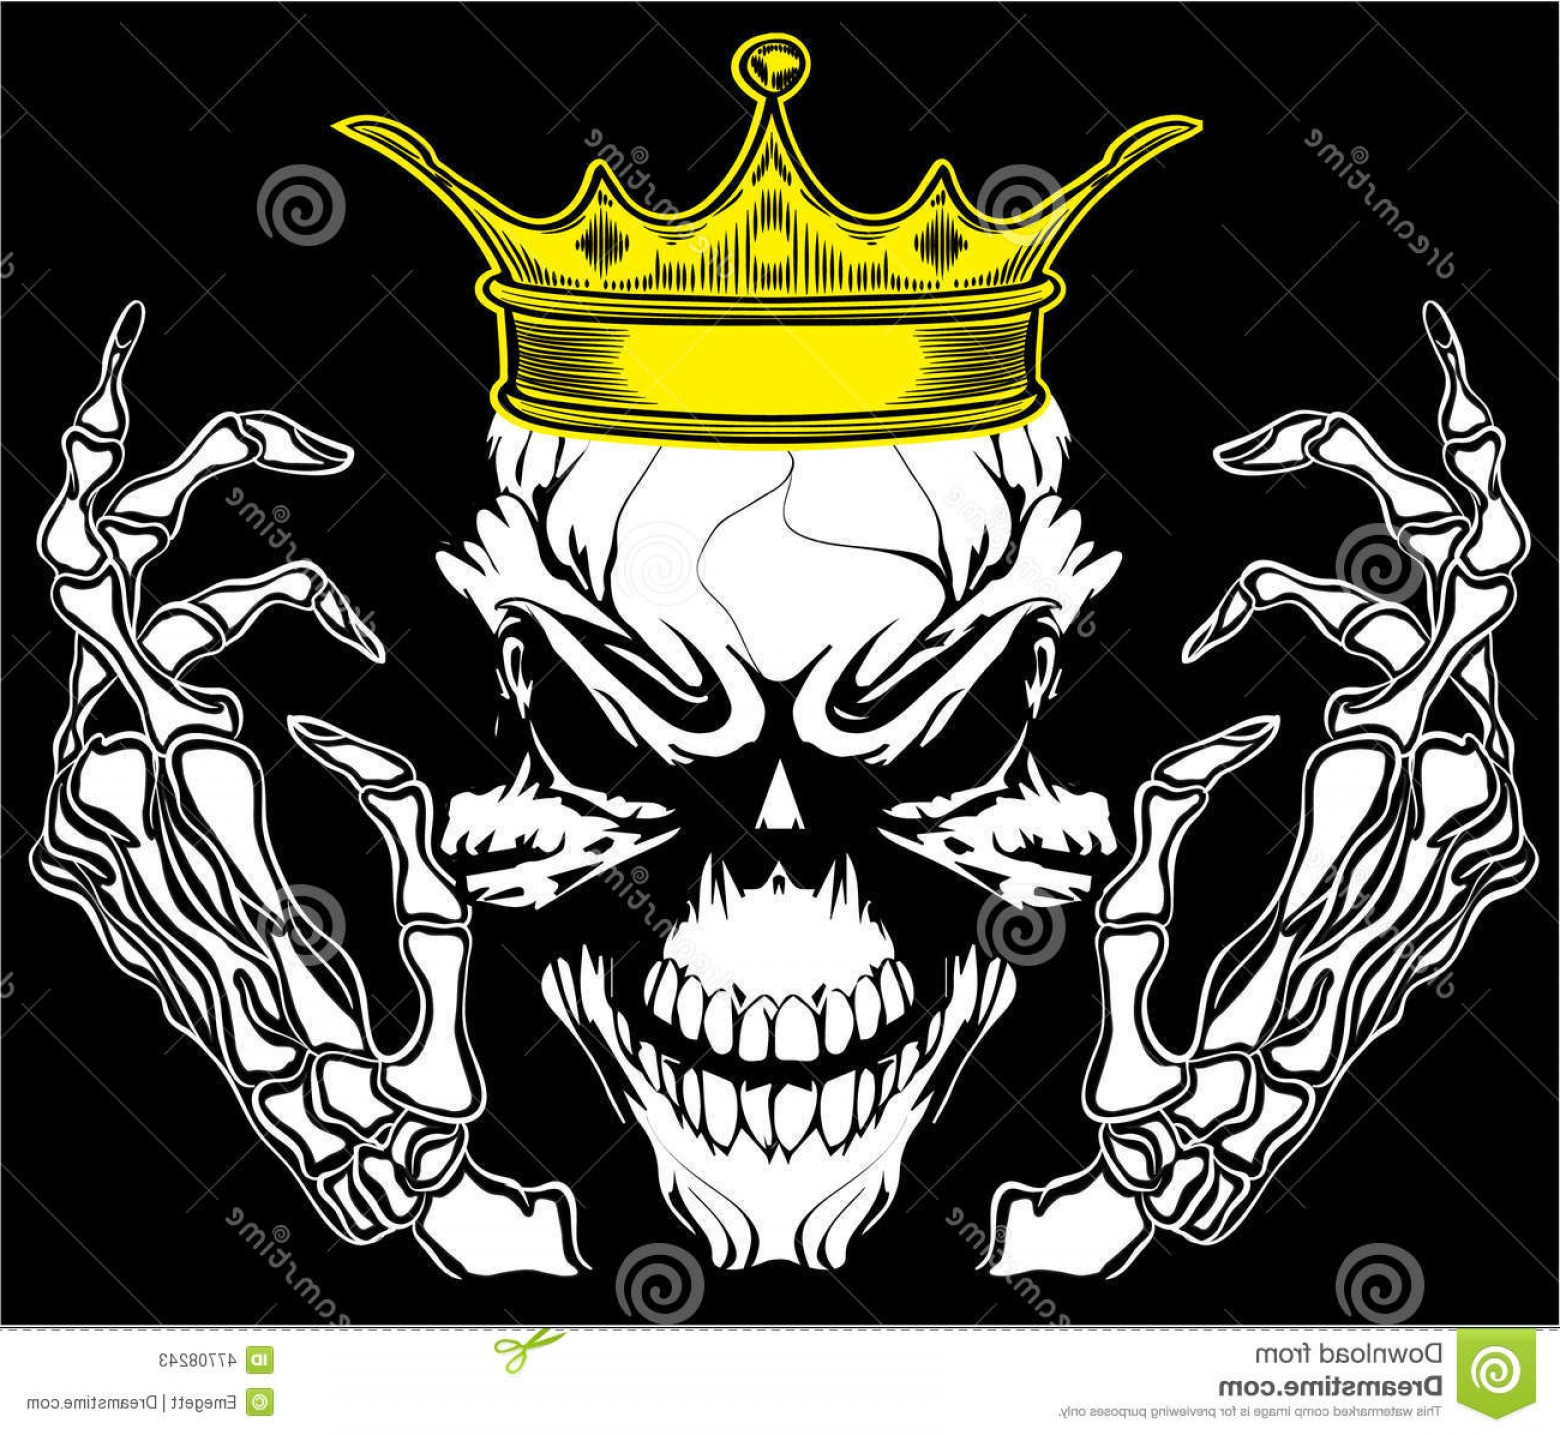 Skull Vector T-shirt Illustration: Stock Illustration Skull King Poster Vintage Man T Shirt Graphic Vector Design Crossbones Mark Danger Warning Graphics Super Image